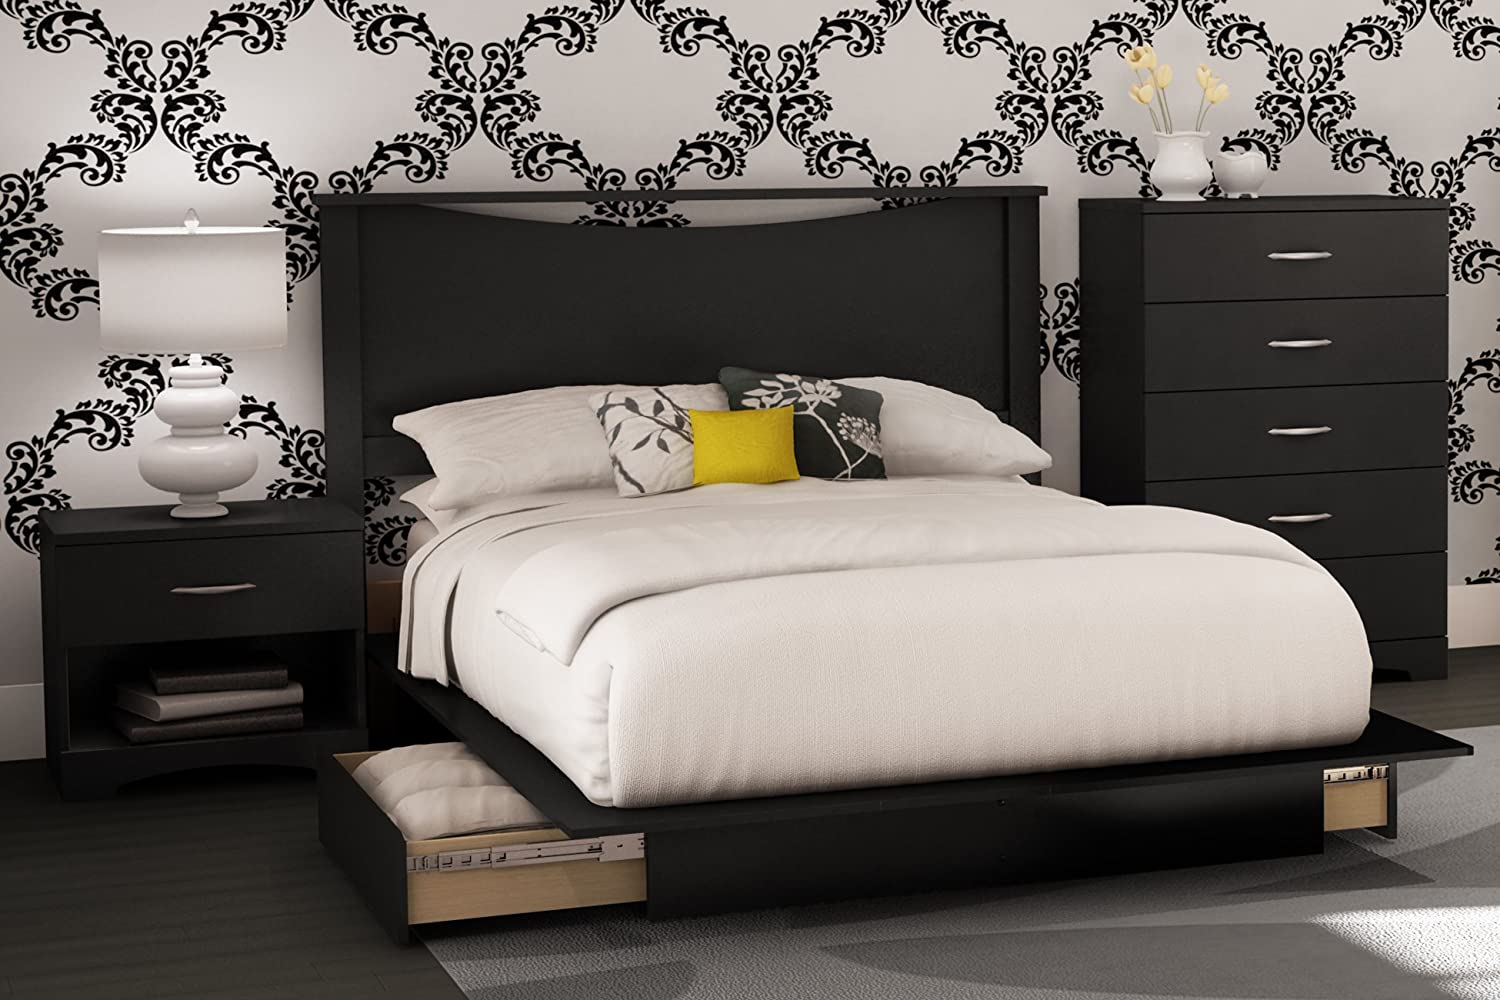 Amazon.com: South Shore Bedroom Set Step One Collection, Black, 4 Piece:  Kitchen U0026 Dining